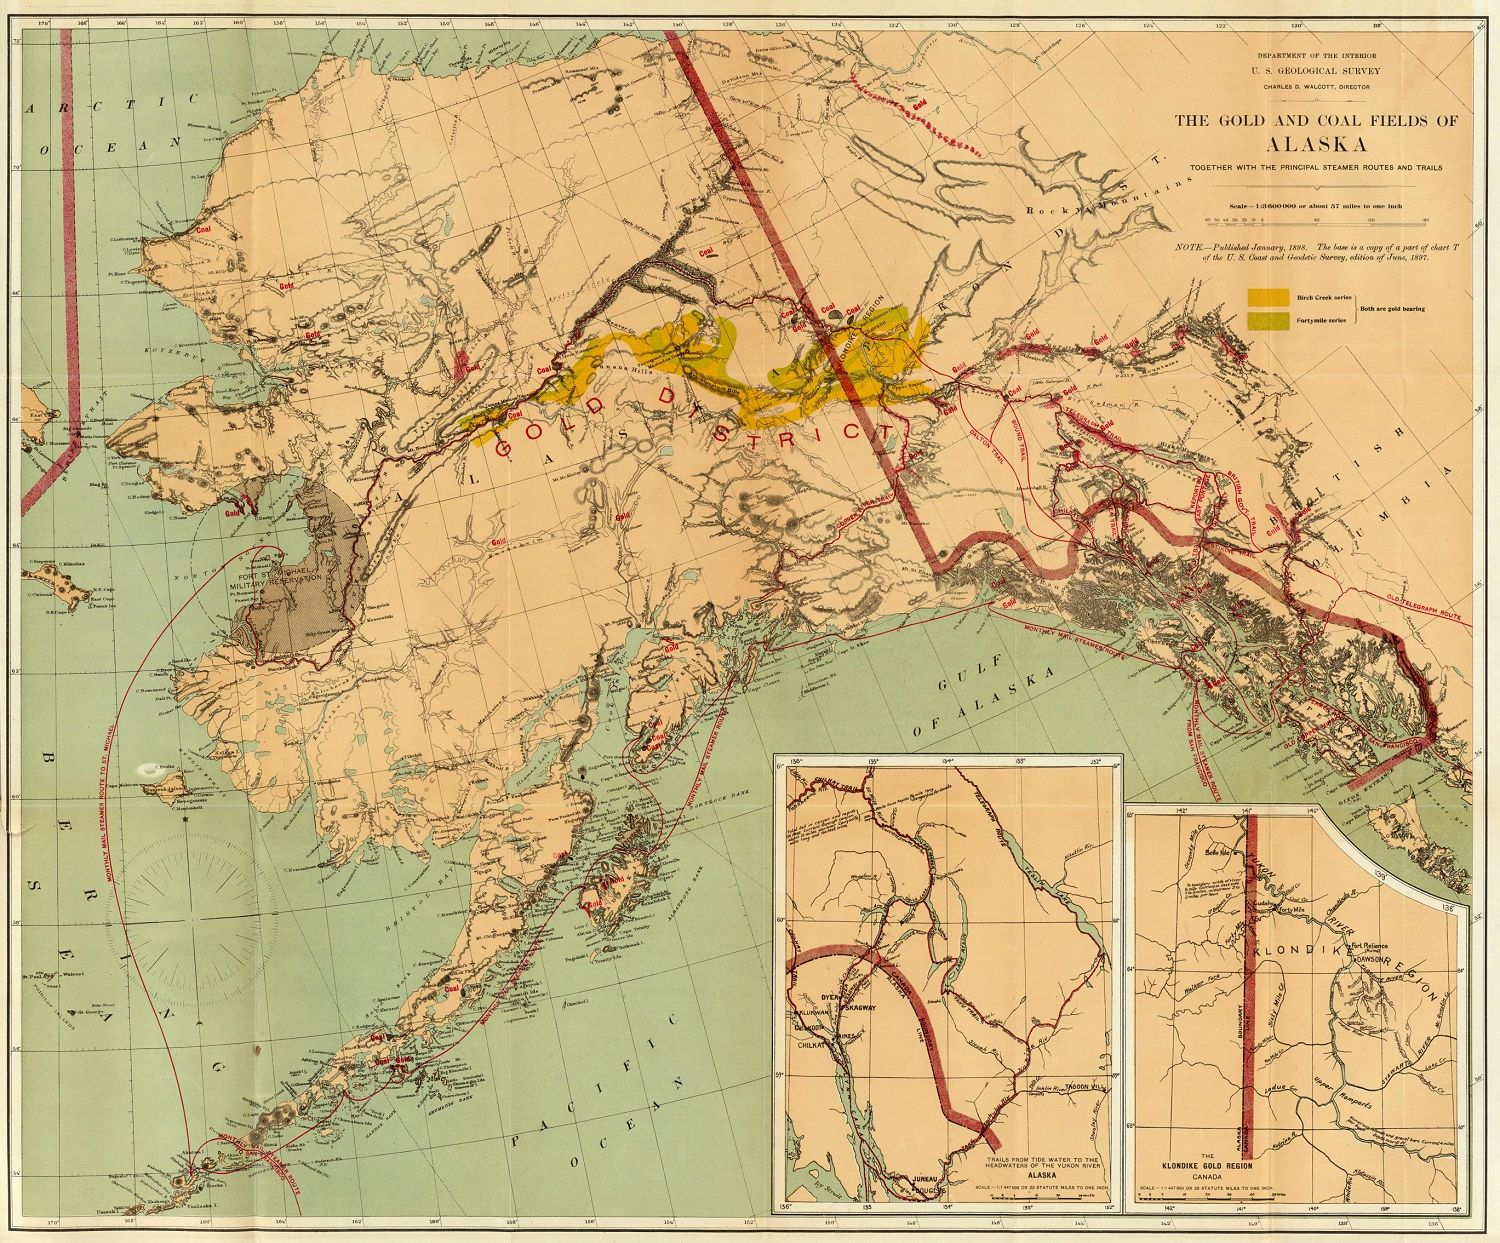 1898 map of the alaska and yukon gold fields in the news 1898 map of the alaska and yukon gold fields in the news alaskaweb gumiabroncs Image collections